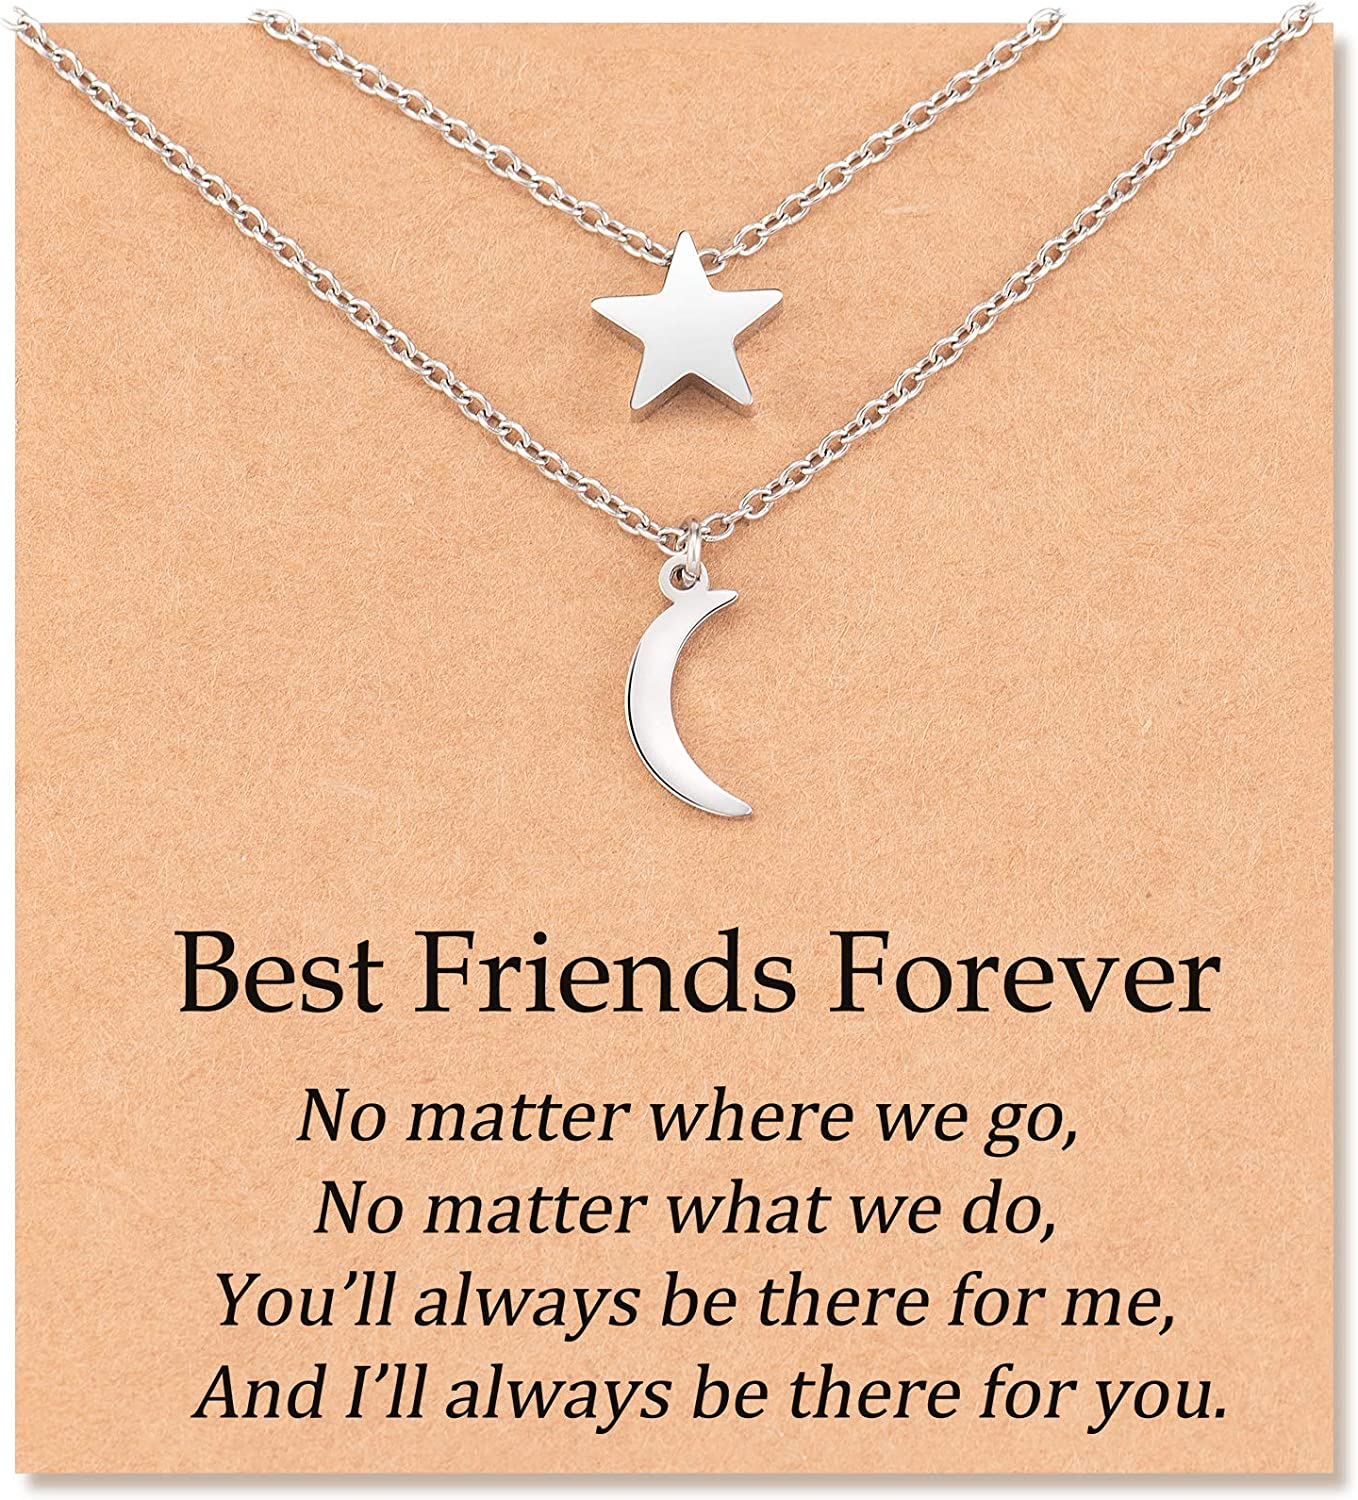 Daughter gift from mom sisters Gift best friend gift for her- bestfriend birthday gift Necklace feather necklace Friendship necklace